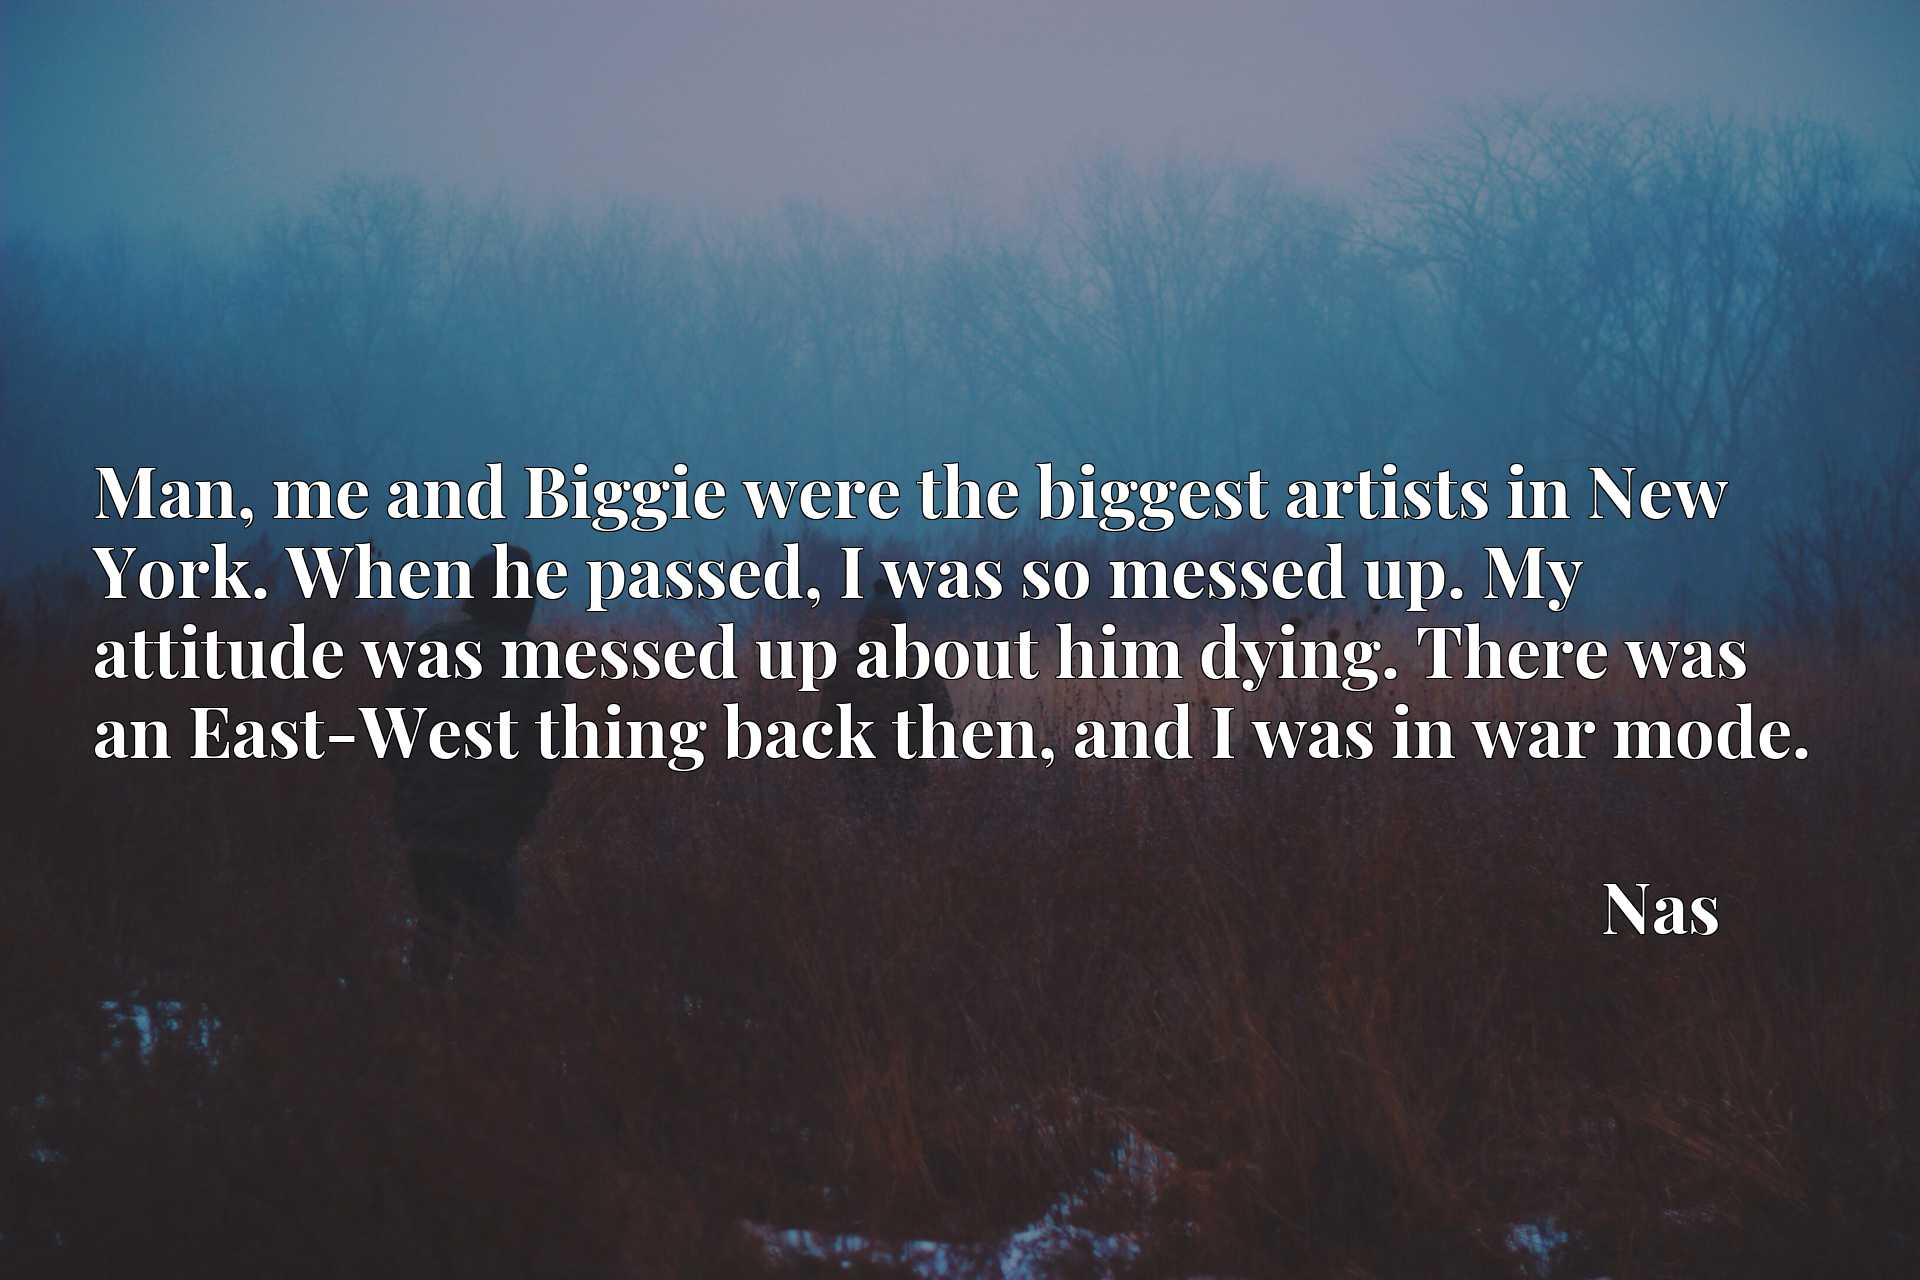 Man, me and Biggie were the biggest artists in New York. When he passed, I was so messed up. My attitude was messed up about him dying. There was an East-West thing back then, and I was in war mode.